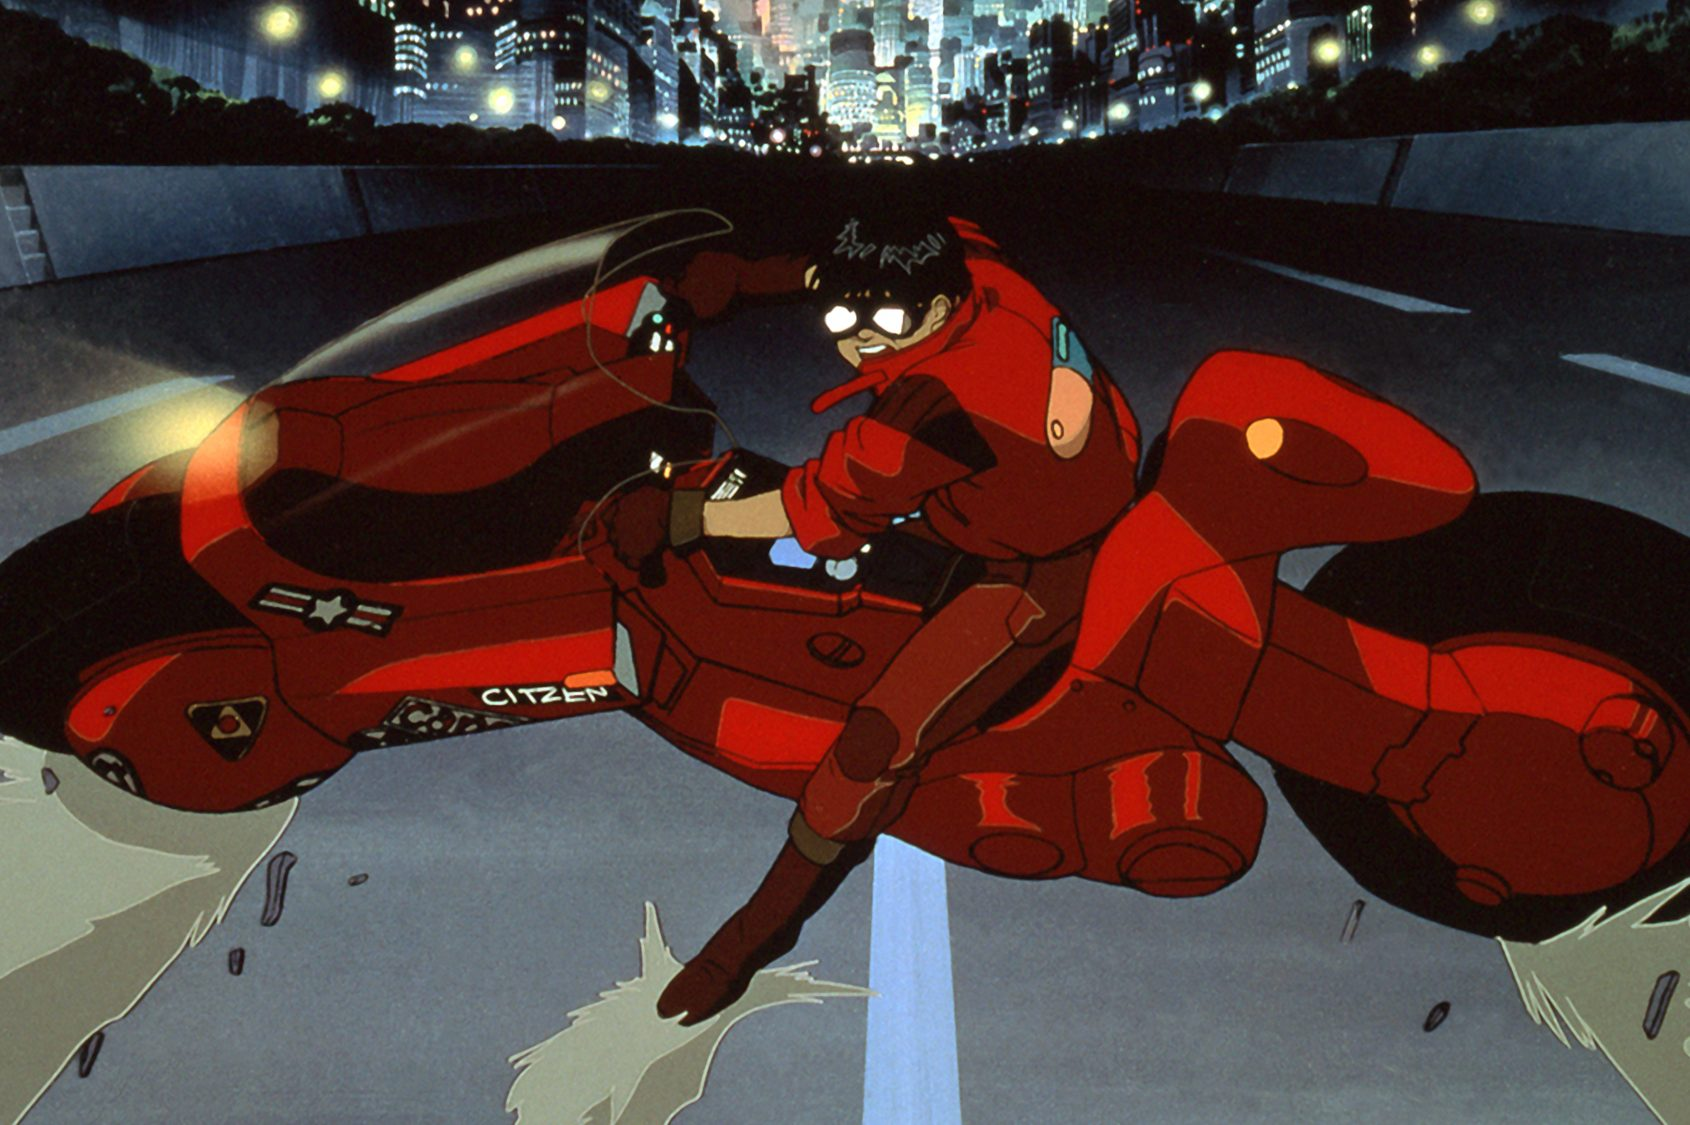 p11 schley akira a 20190614 e1629188727565 10 Amazing Facts You Probably Never Knew About Akira